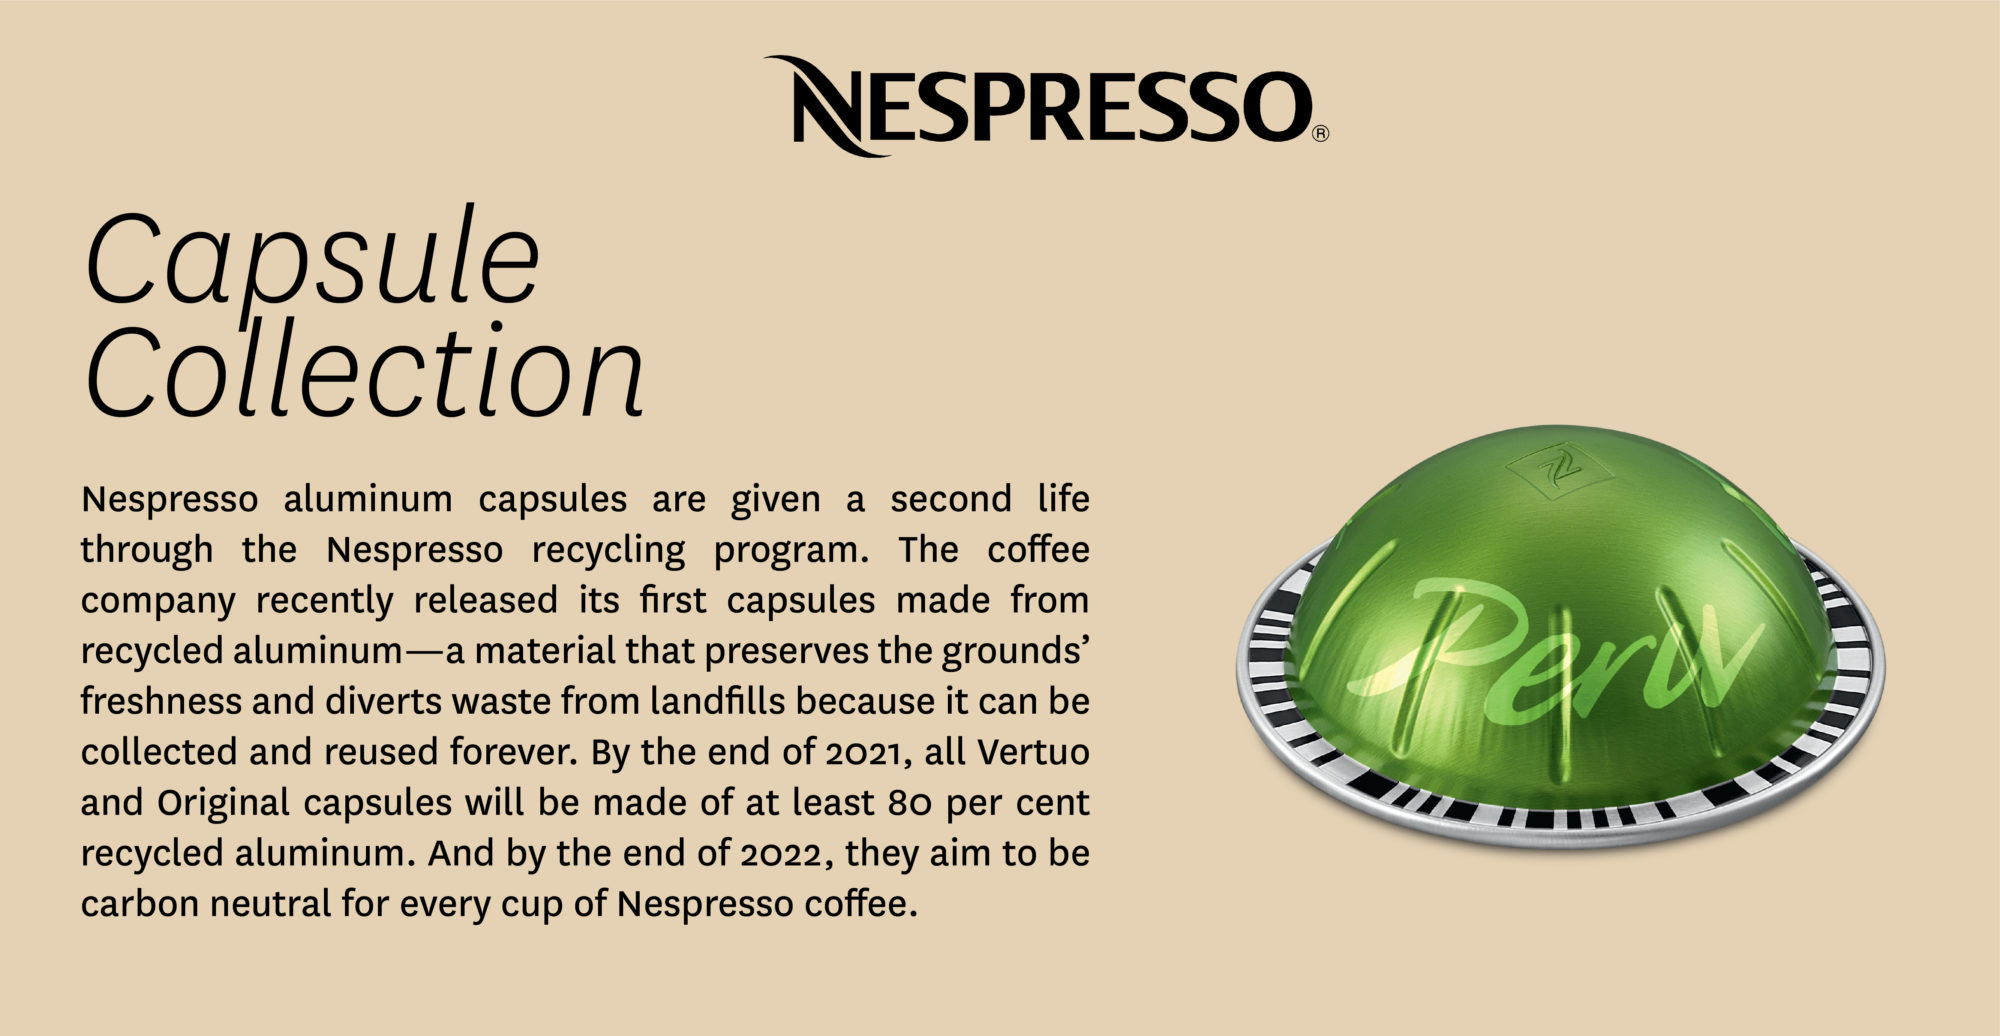 About the Nespresso recycling program